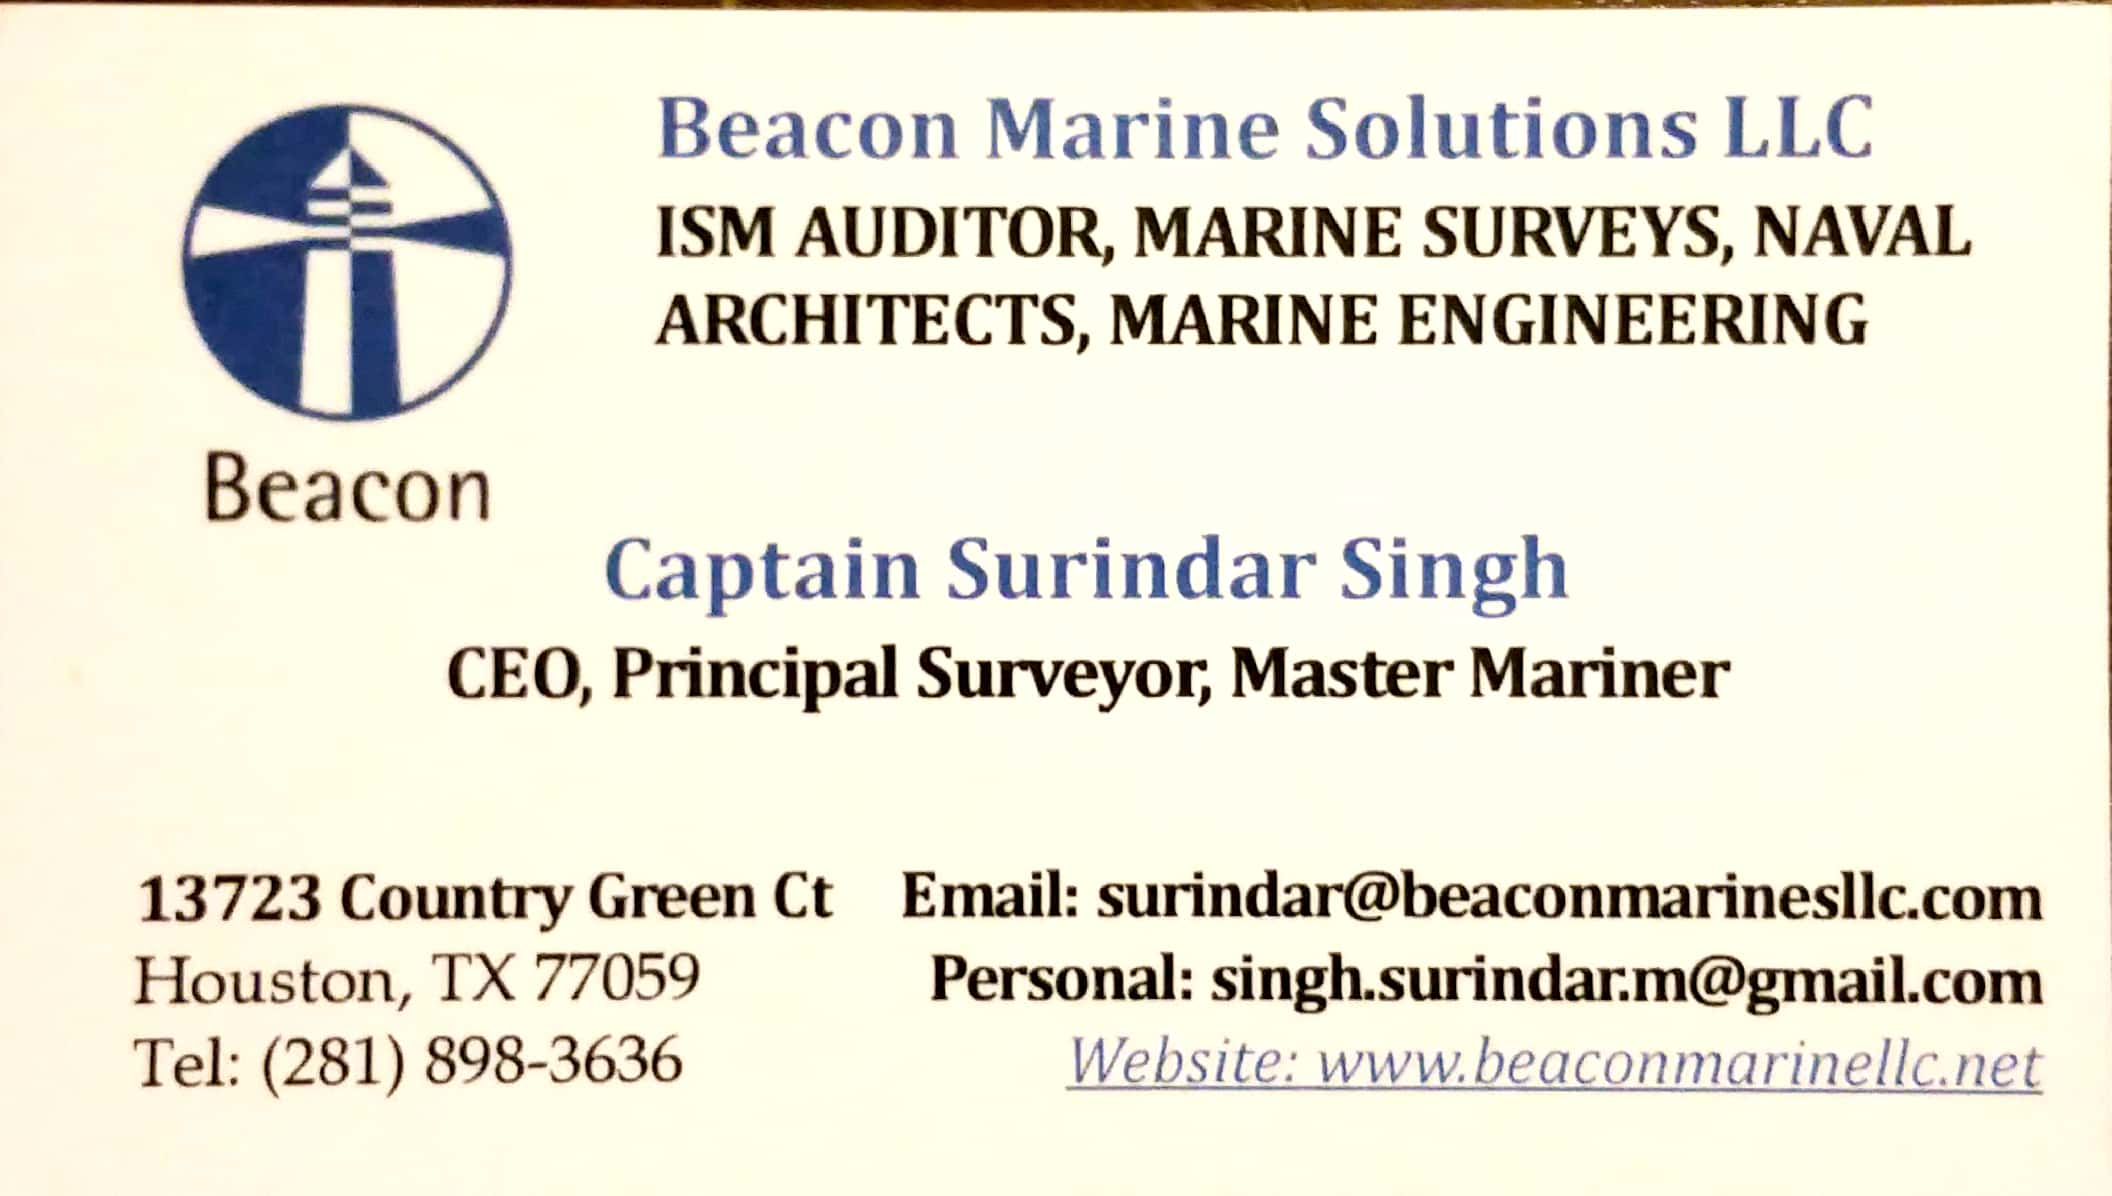 Beacon Marine Solutions LLC